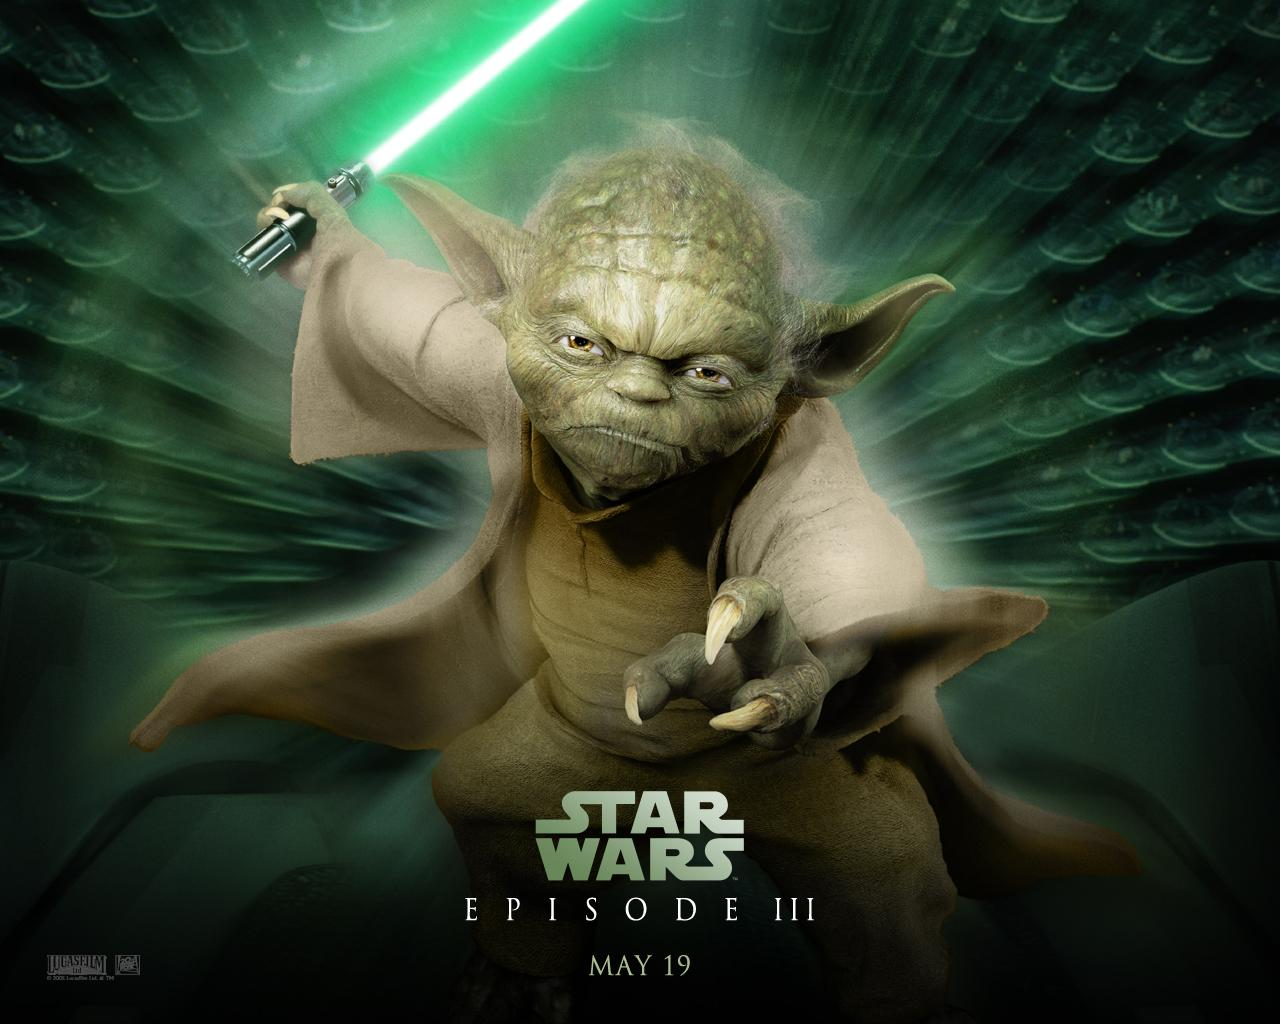 Wallpaper Star Wars Maitre Yoda